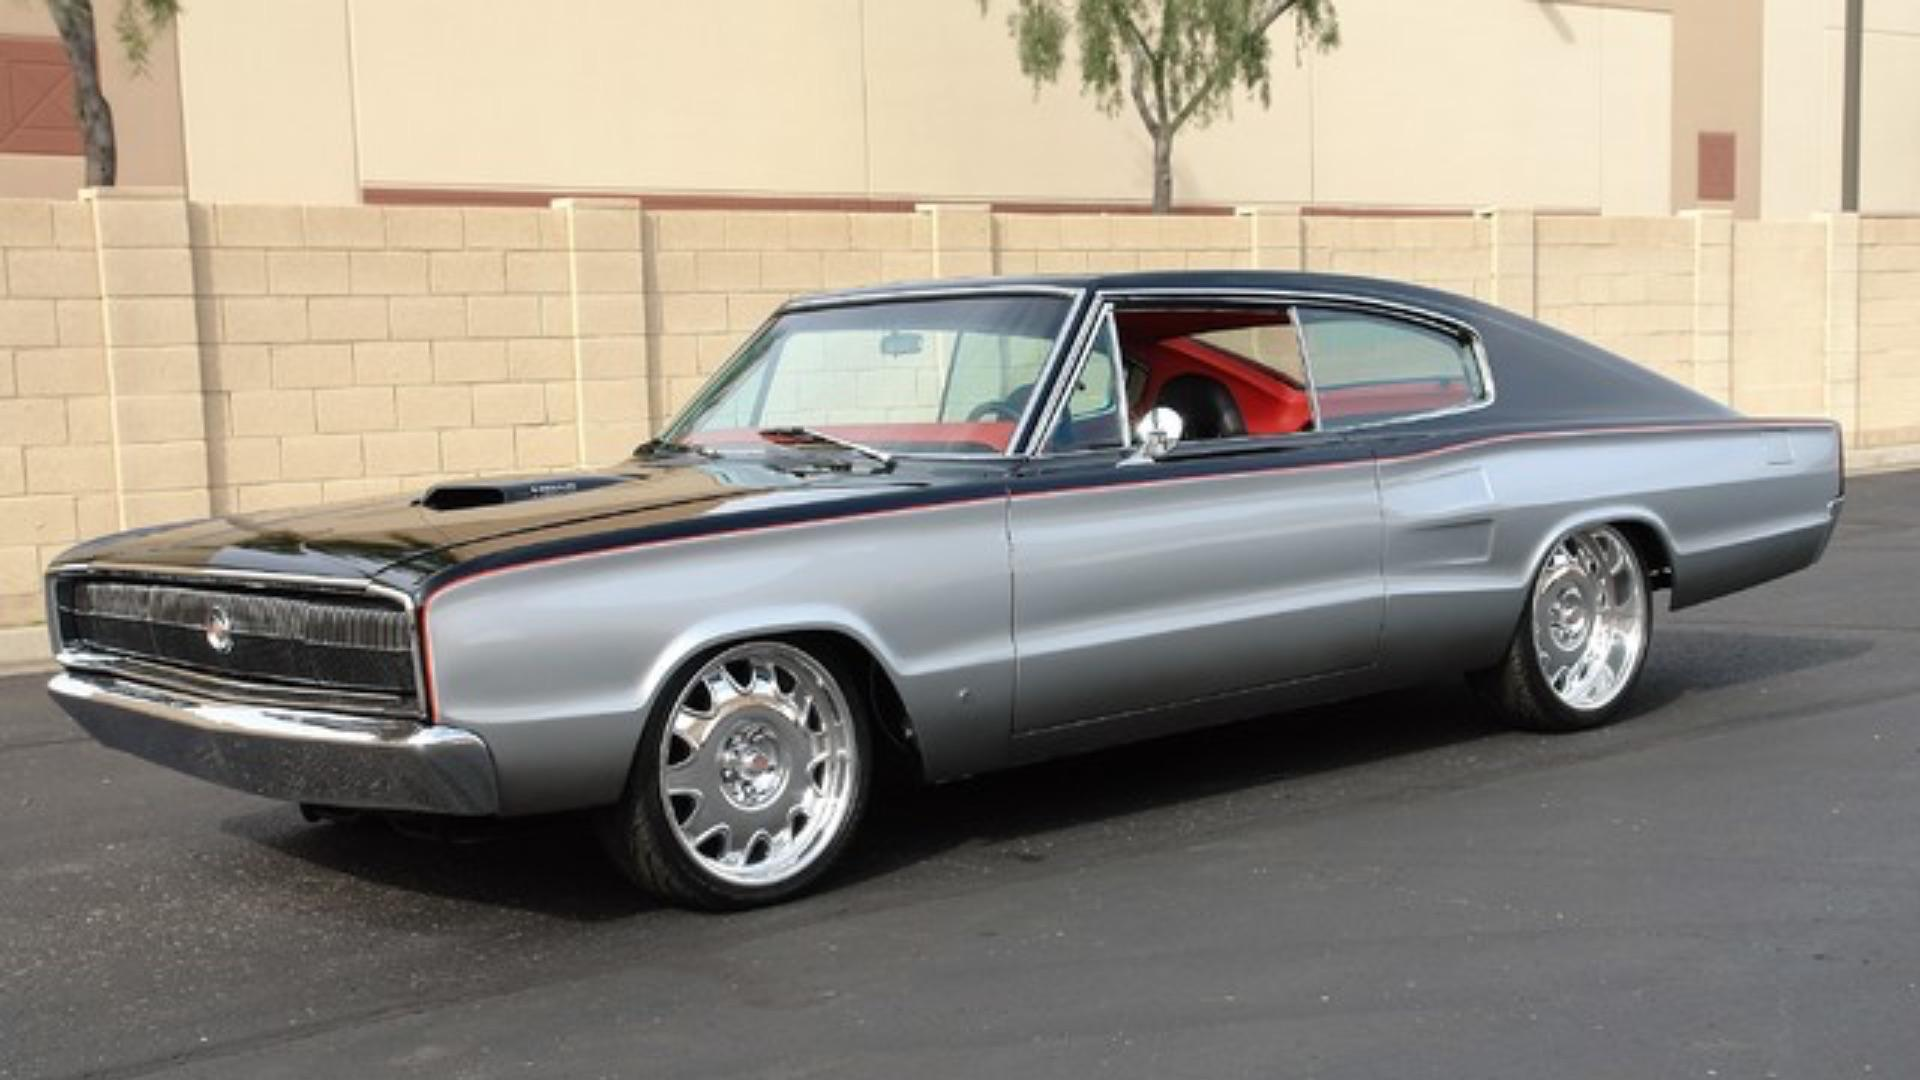 1967 Dodge Charger Was Once Featured On Foose's Overhaulin'